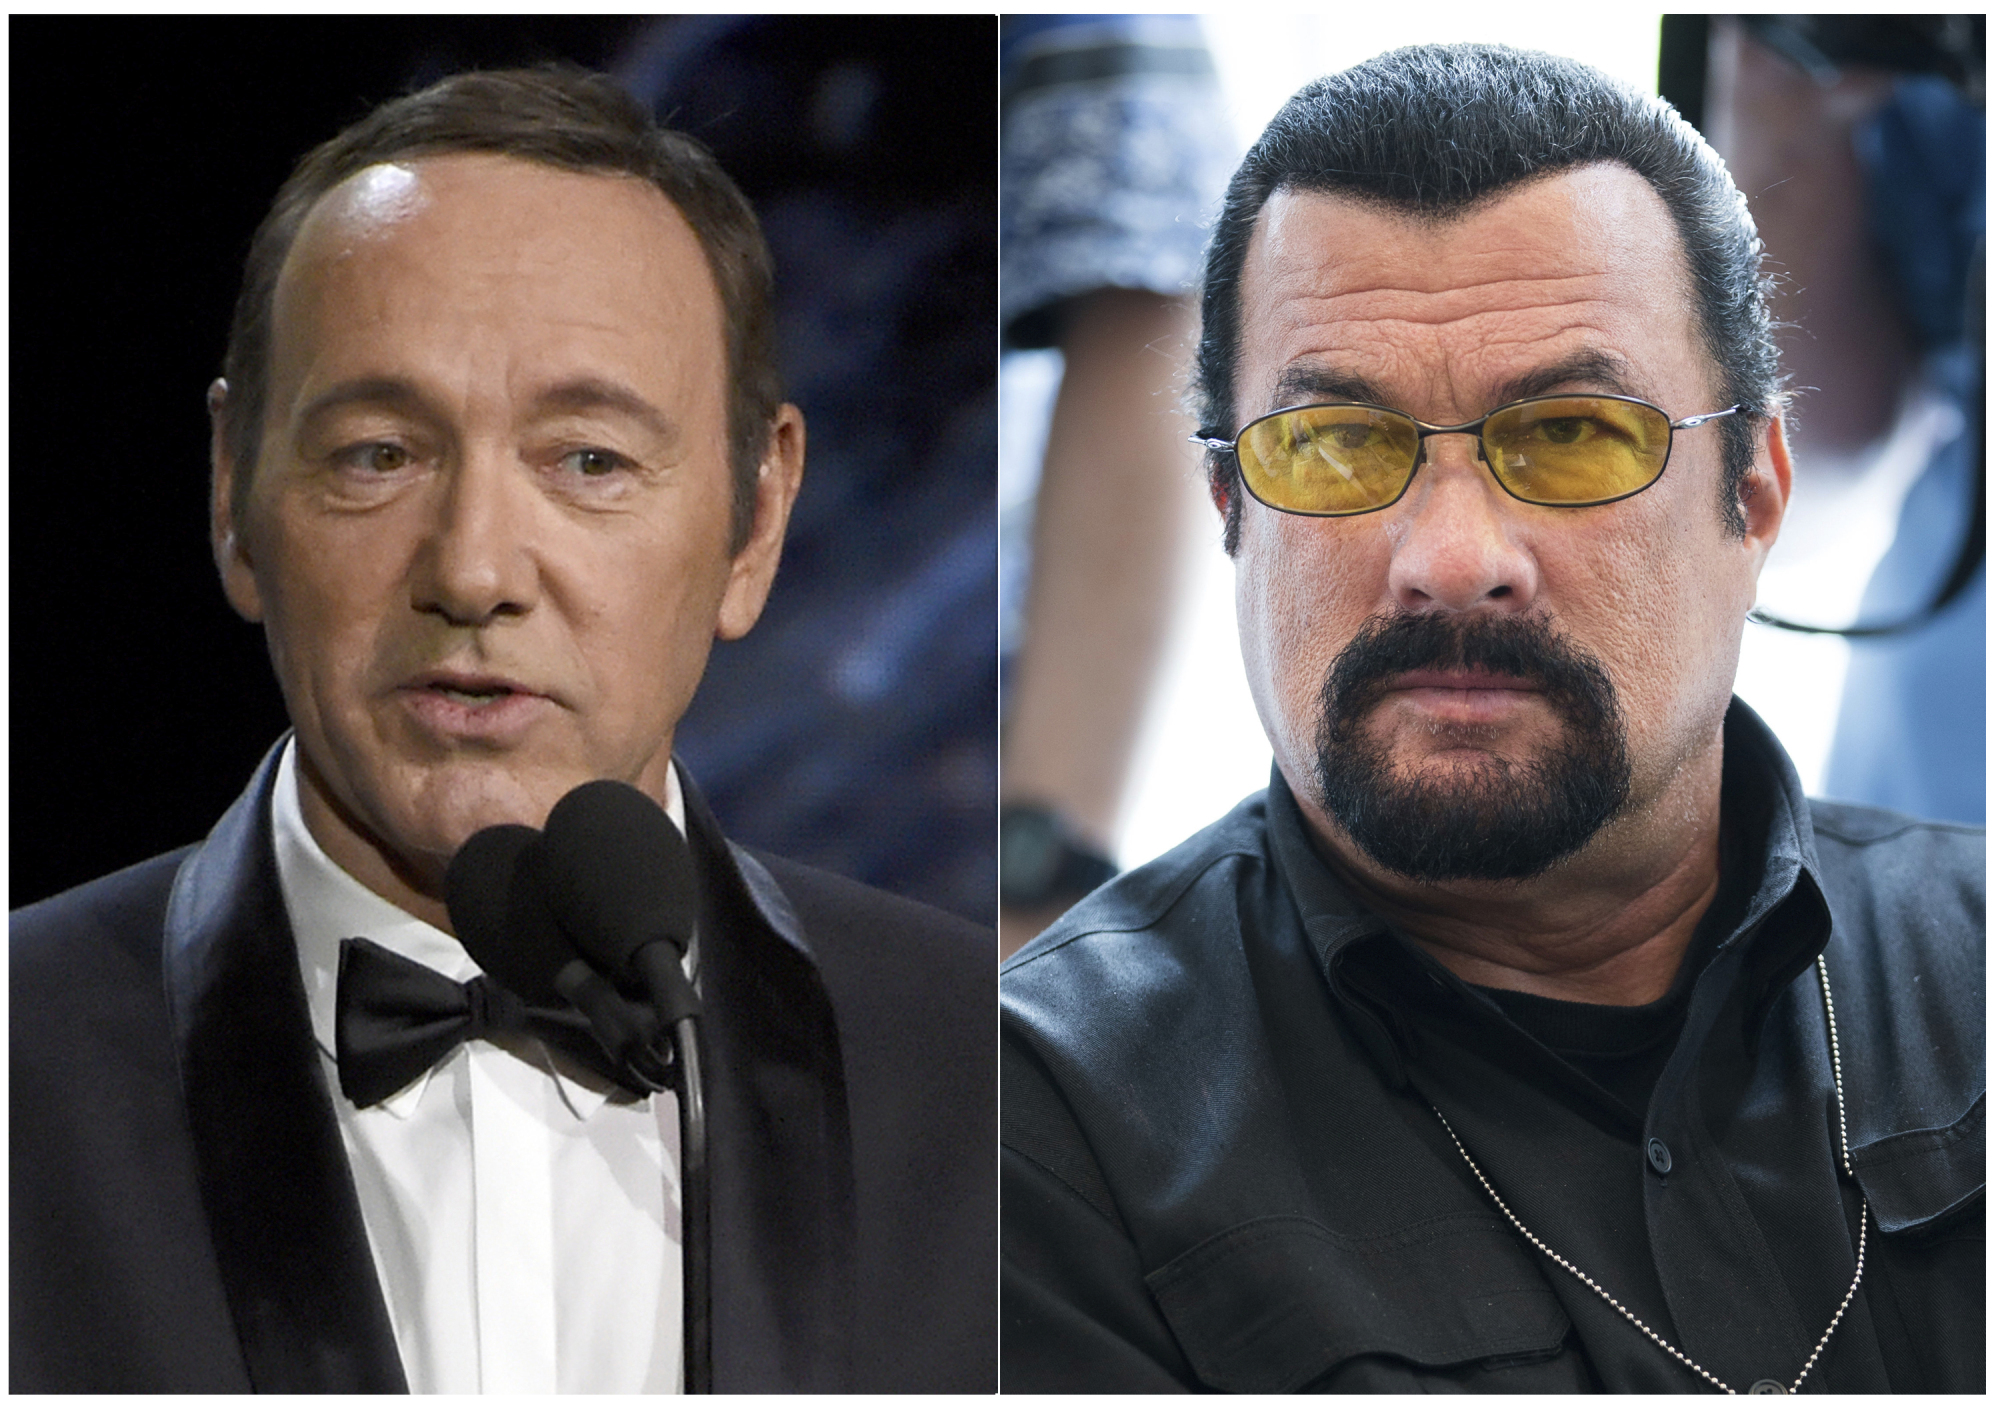 Kevin Spacey and Steven Seagal | AP